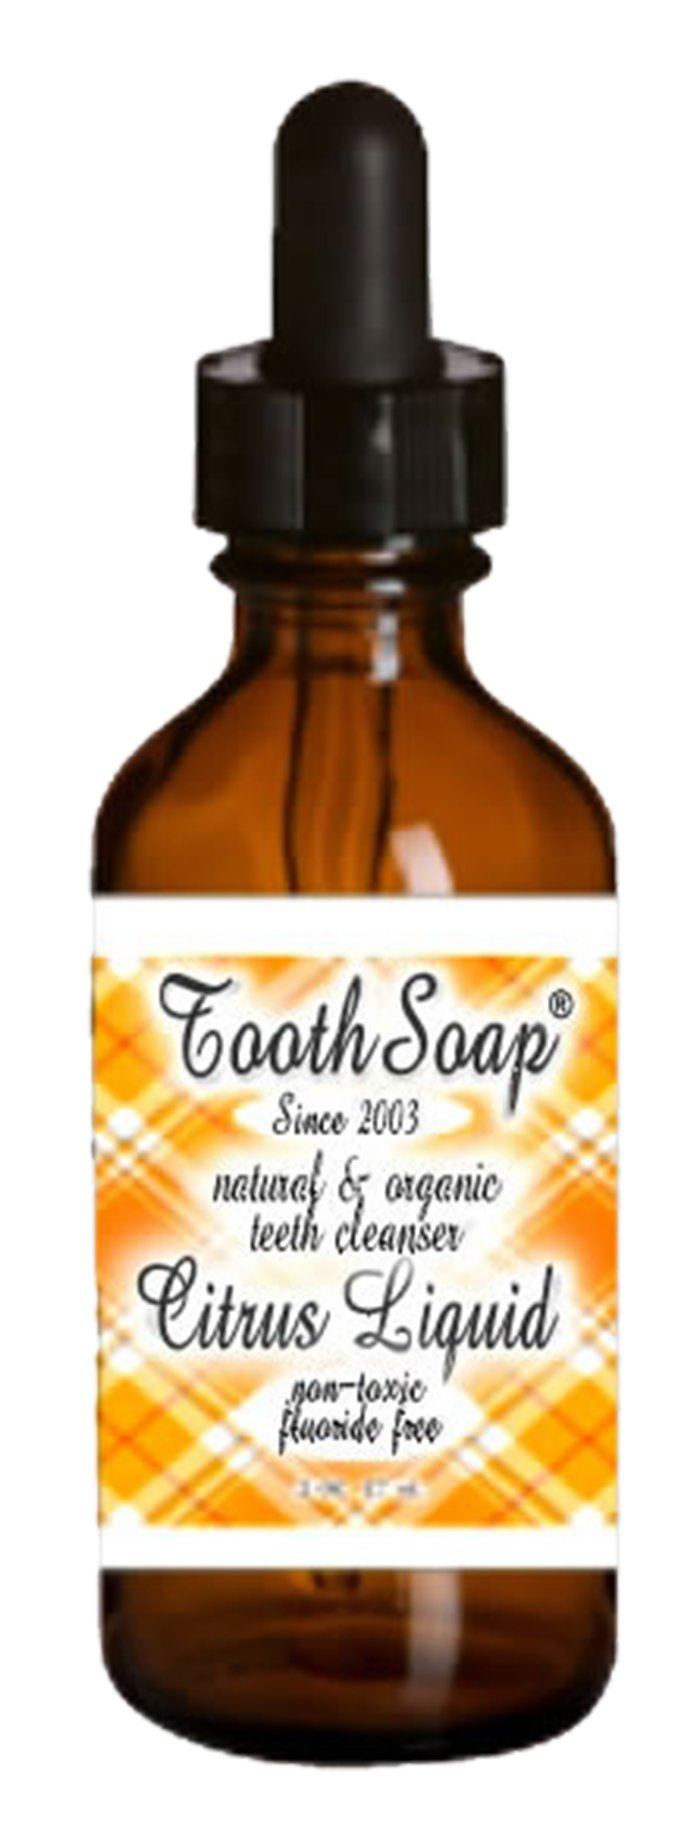 Citrus Tooth Soap natural toothpaste alternative